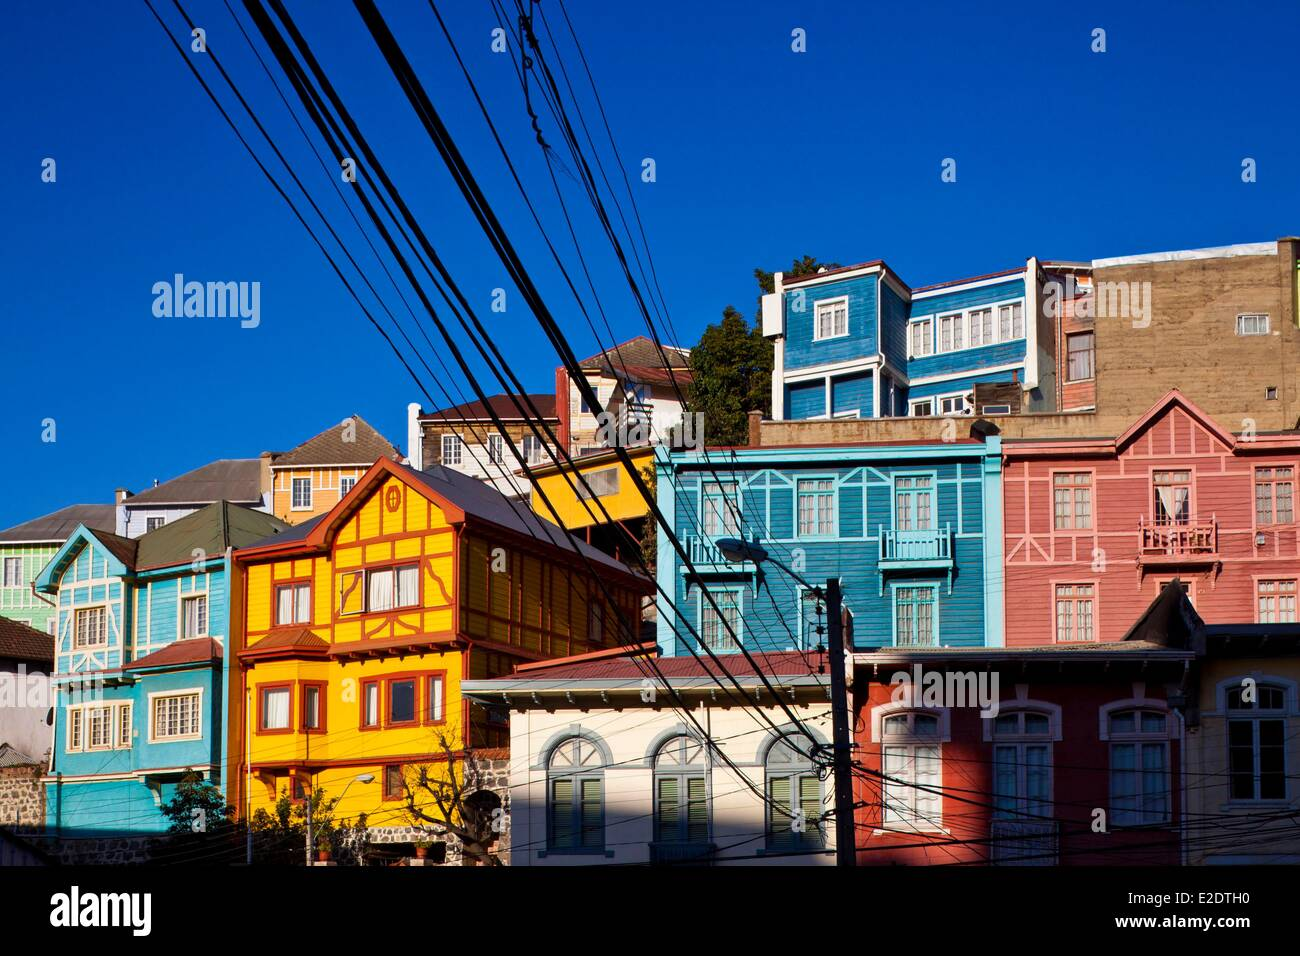 Chile Valparaiso Region Valparaiso historical centre listed as World Heritage by UNESCO colorful houses - Stock Image